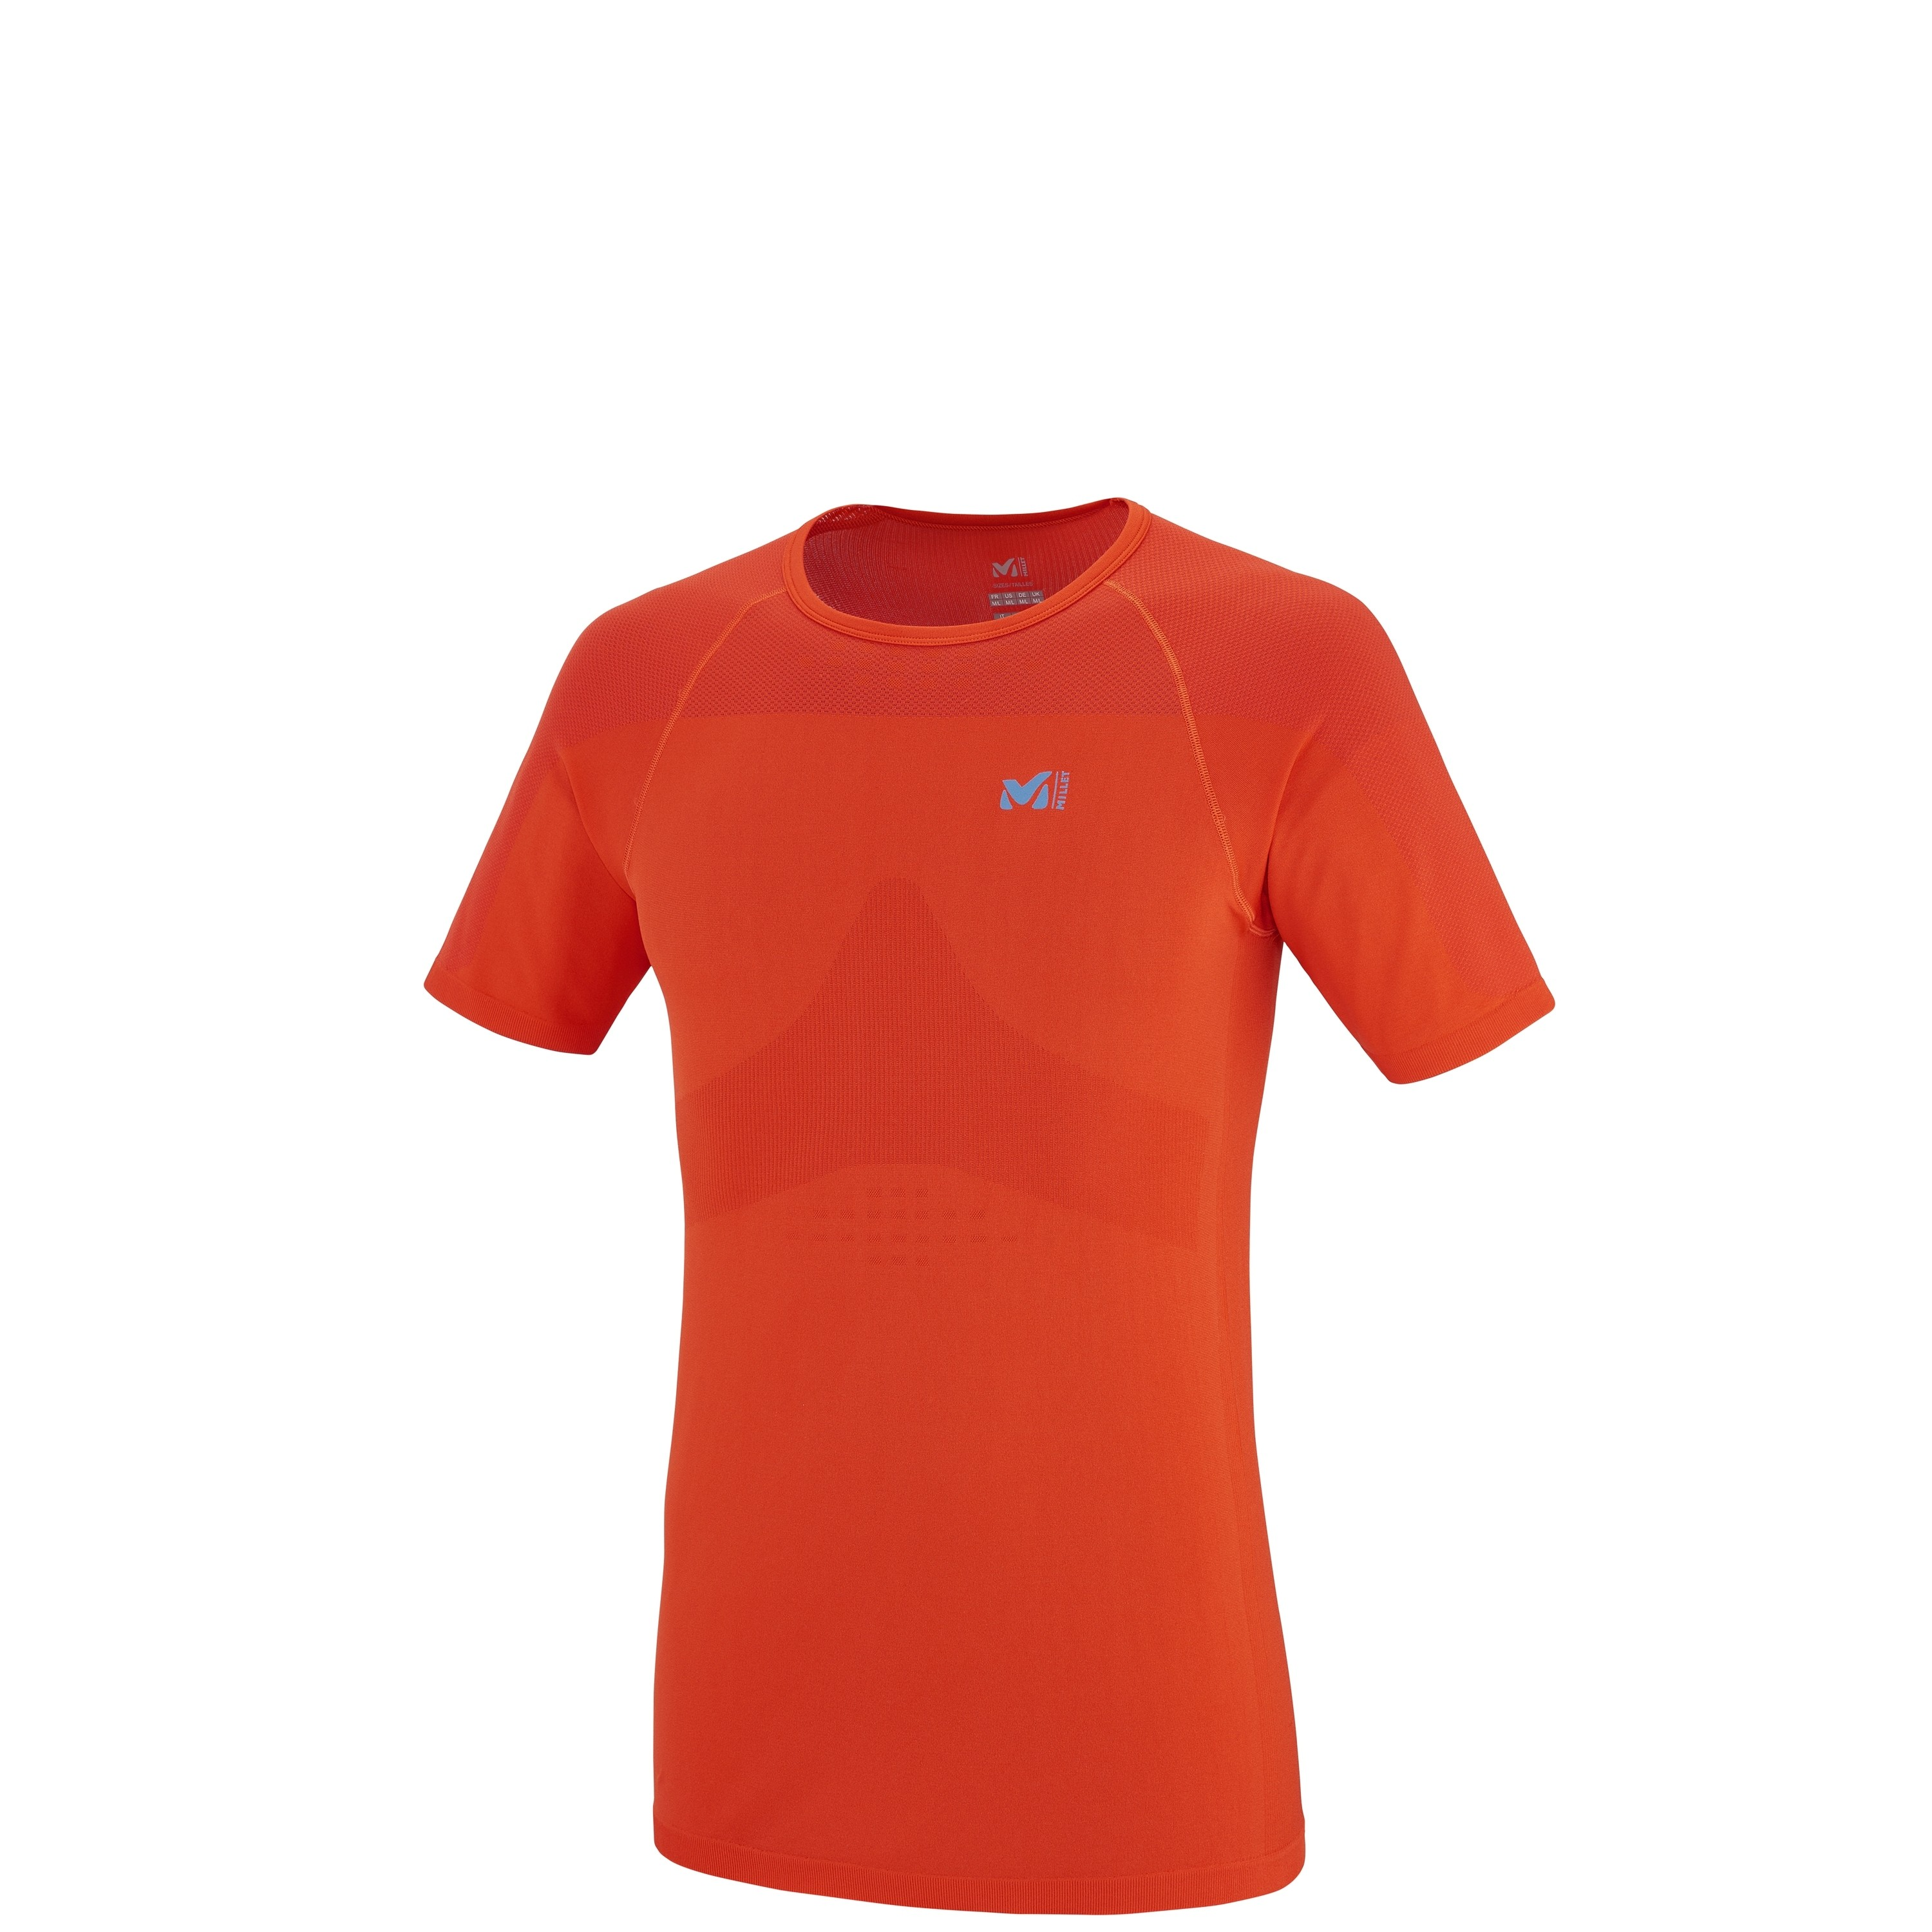 Ltk Seamless Ts Ss Millet Moutain